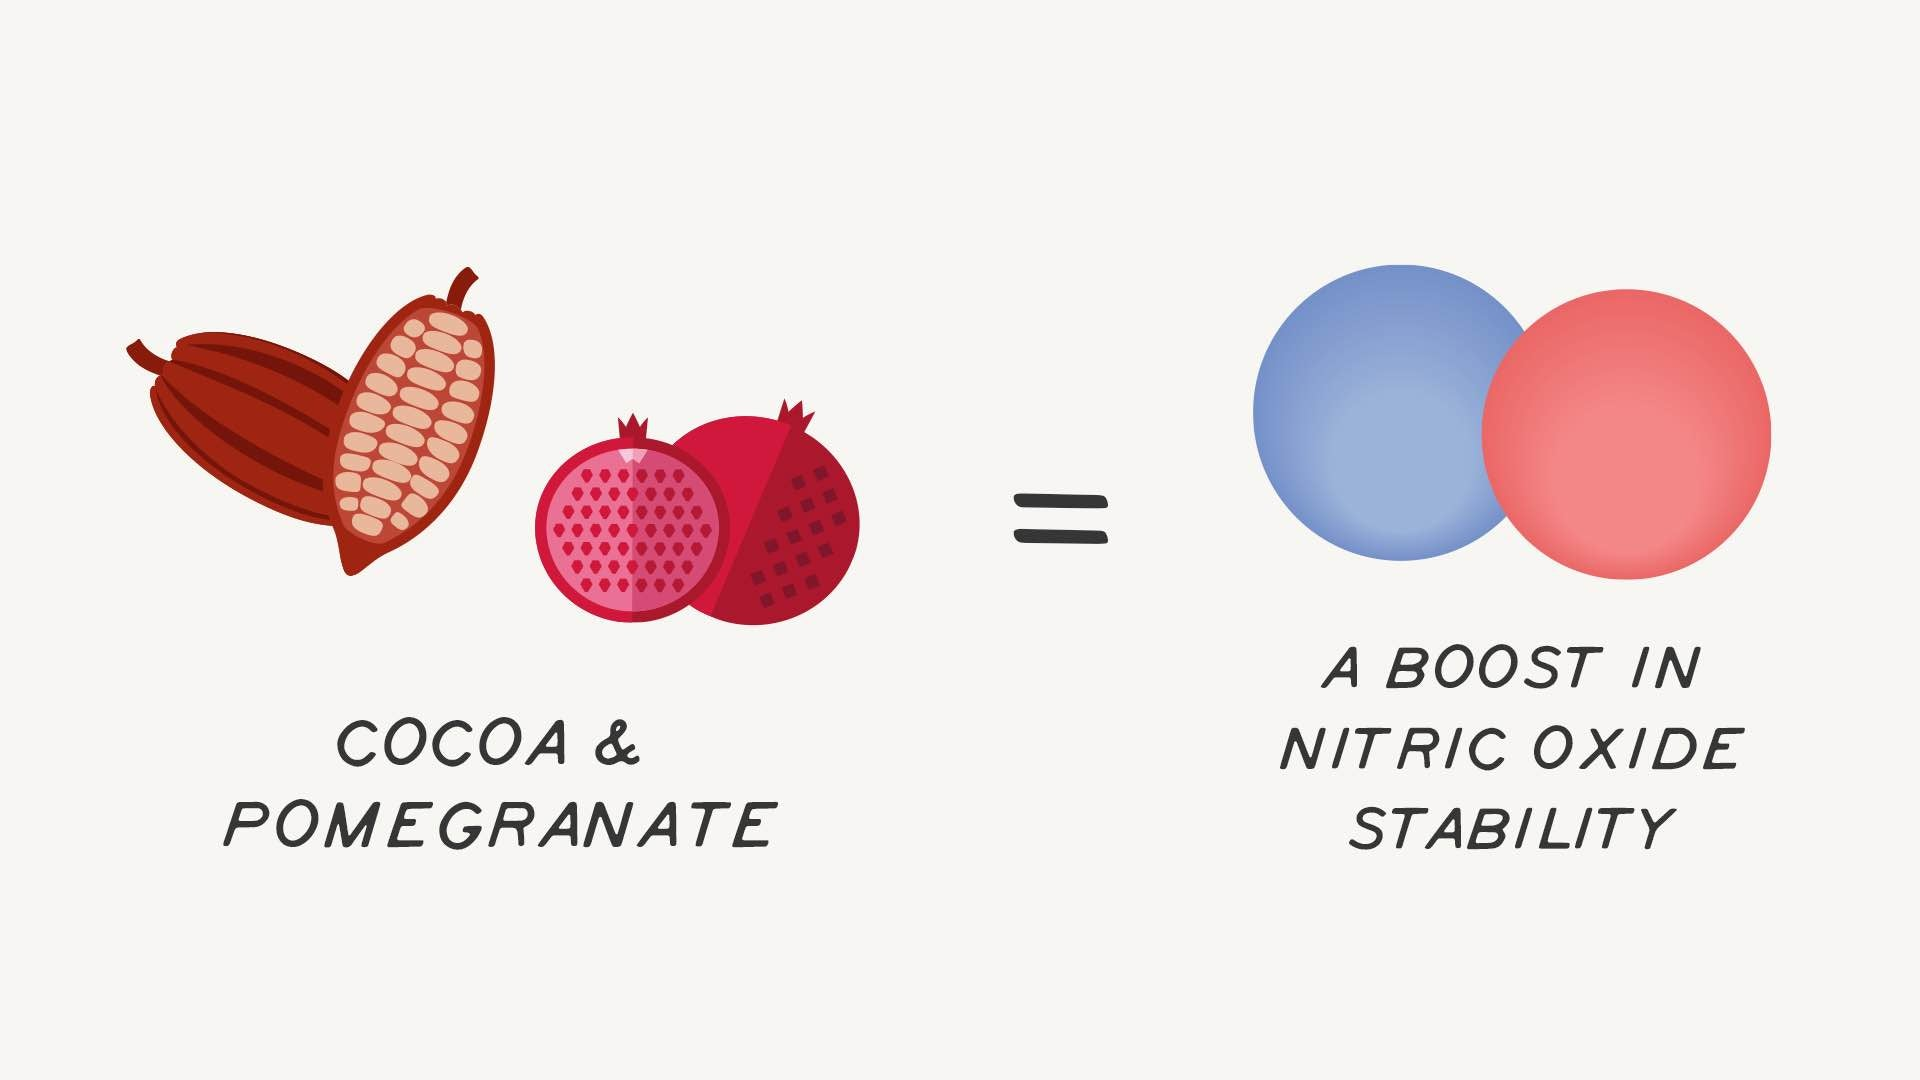 increase nitric oxide stability